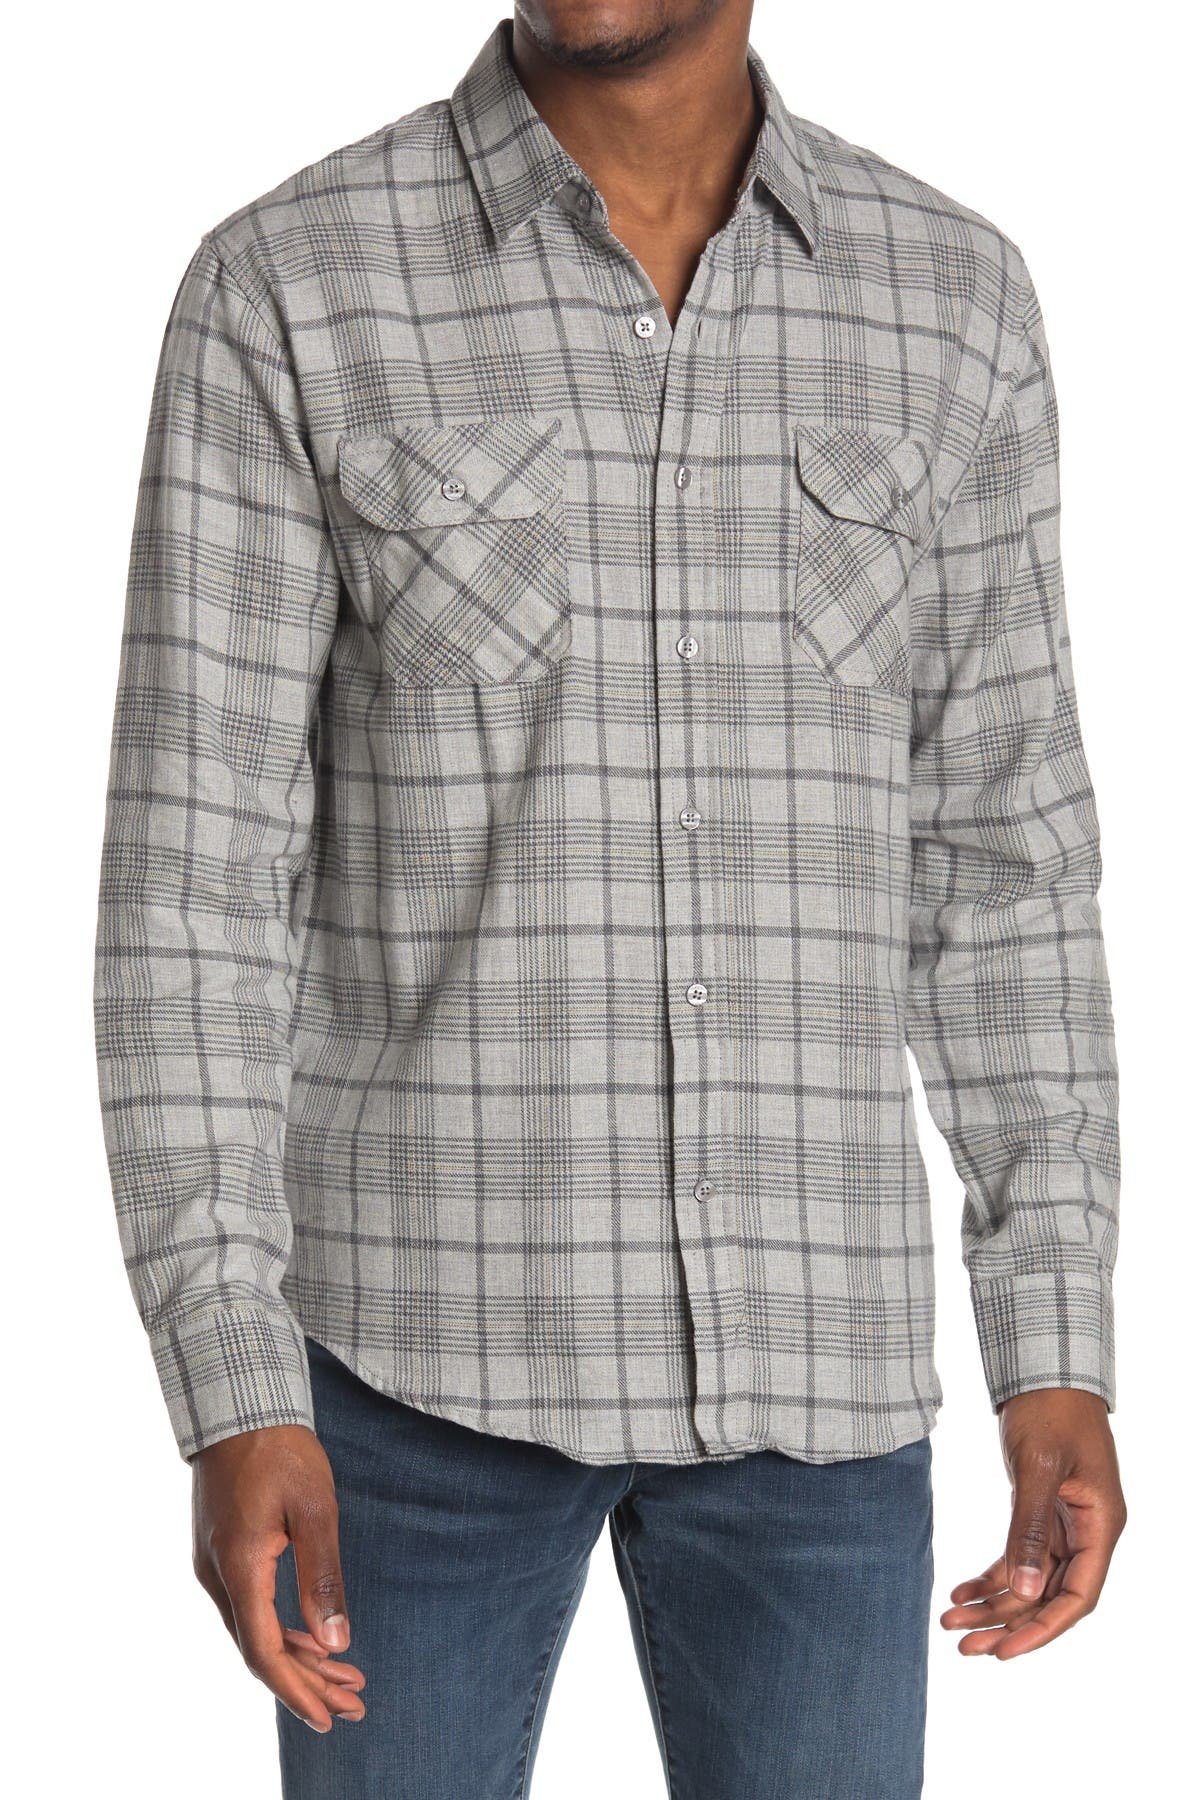 Image of Coastal Morrow Brushed Cotton Flannel